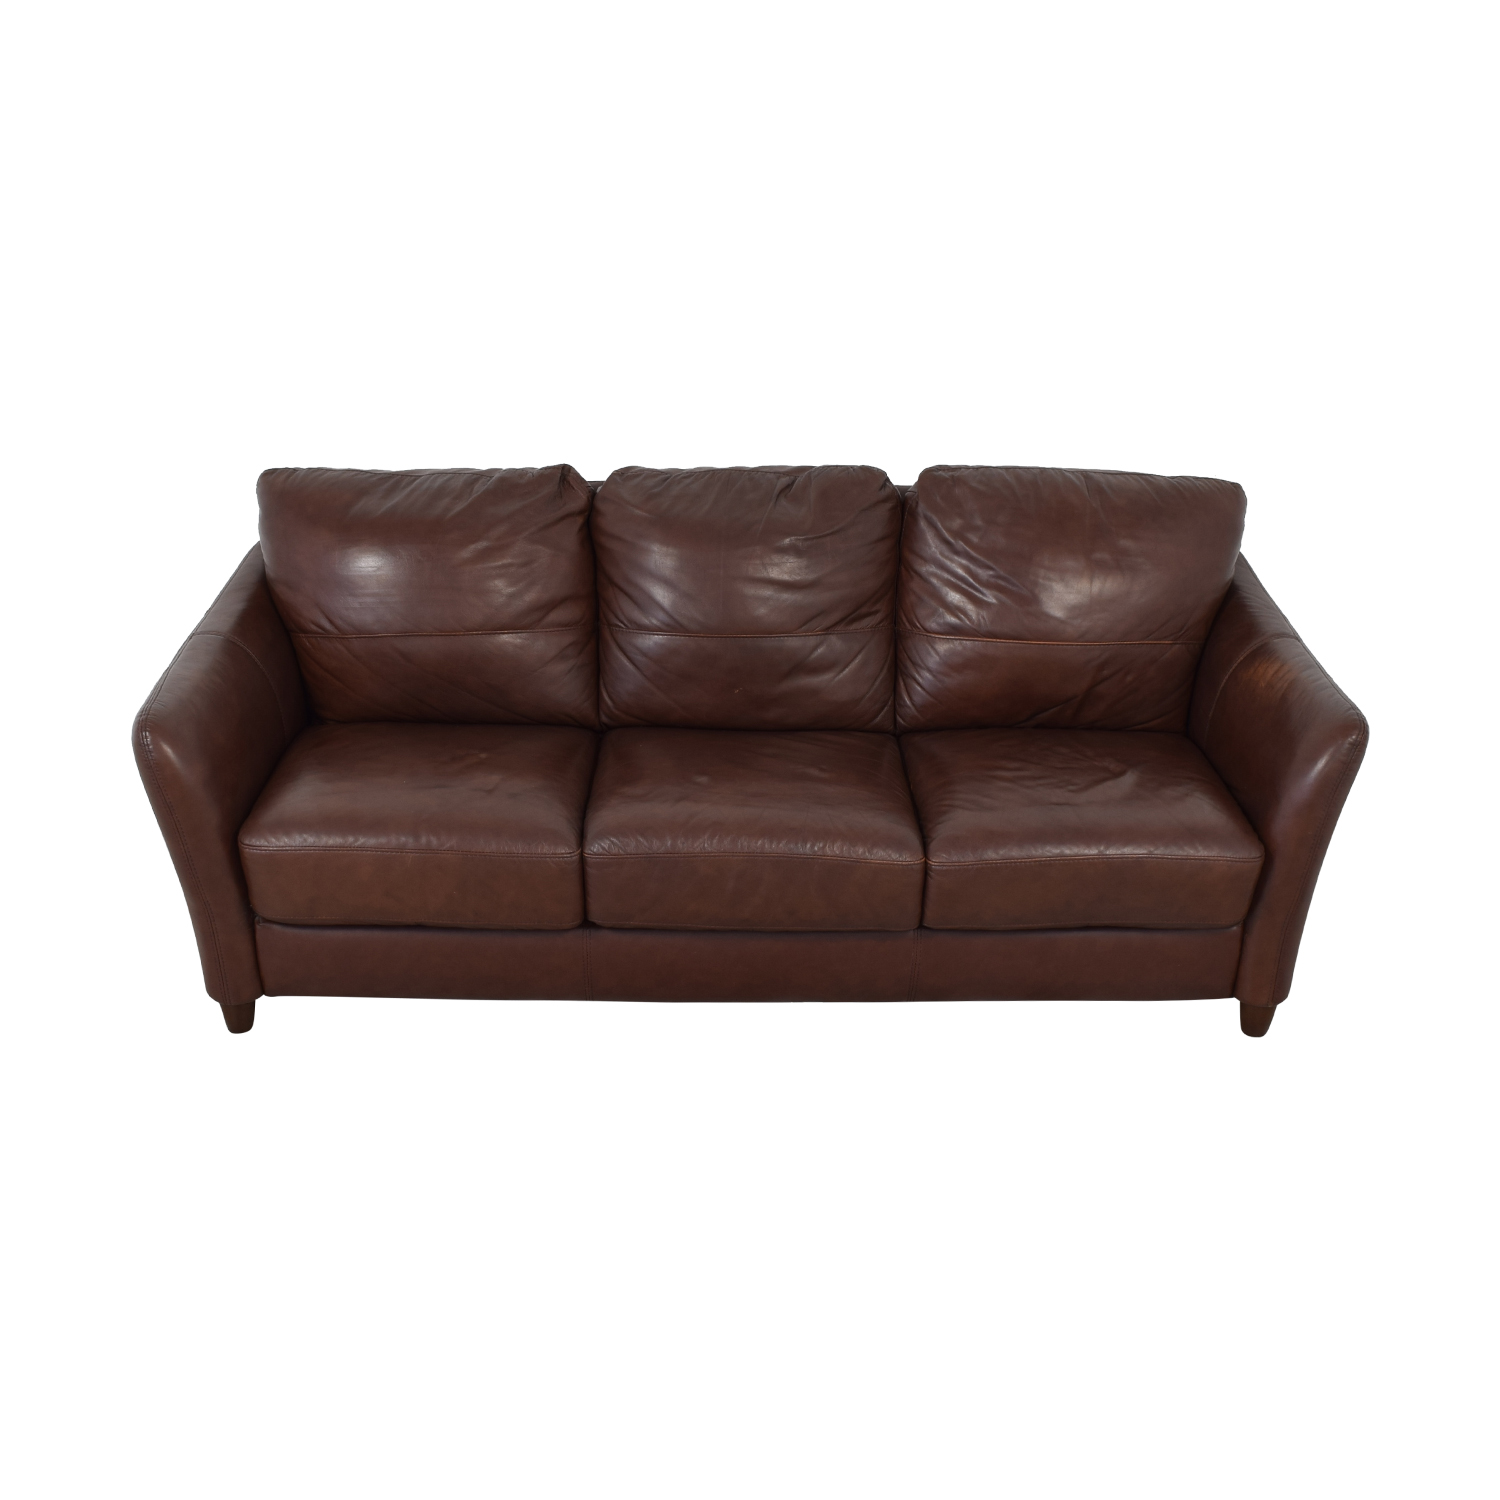 Raymour And Flanigan Leather Sleeper Sofa: Raymour & Flanigan Raymour & Flanigan Leather